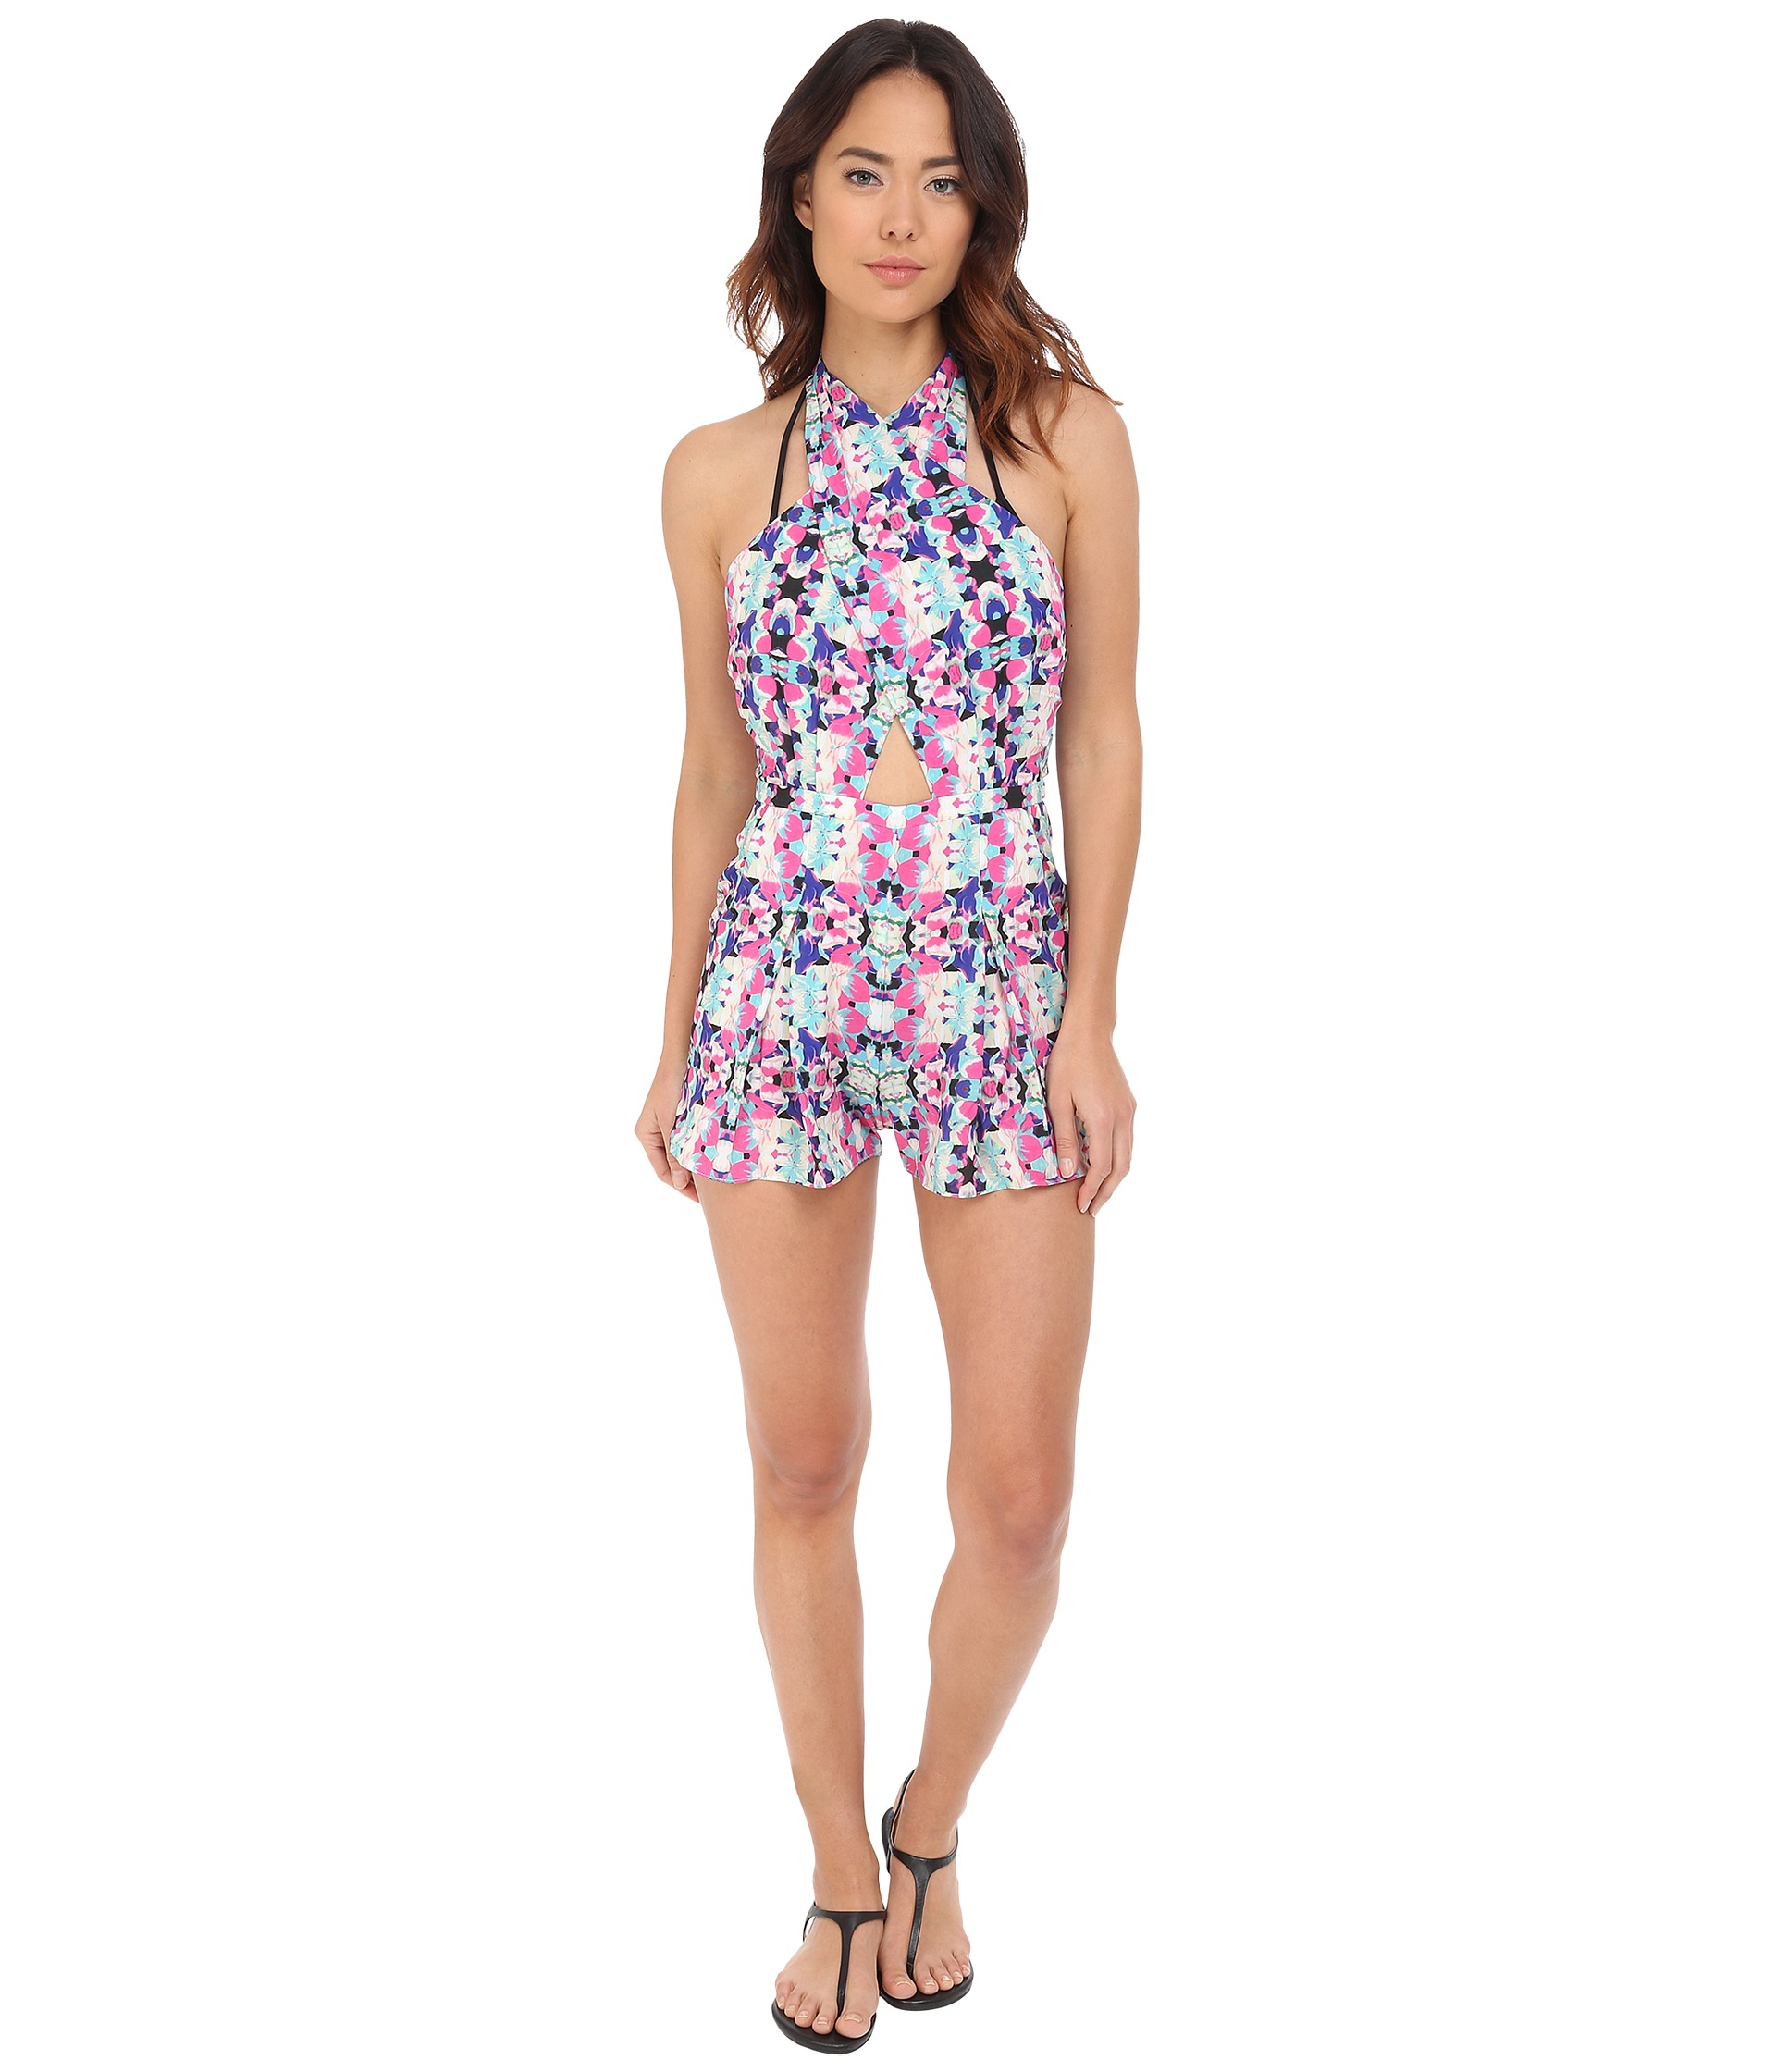 ba3e5cd5ae6 Lyst - 6 Shore Road By Pooja Chiva Romper Cover-up in Pink